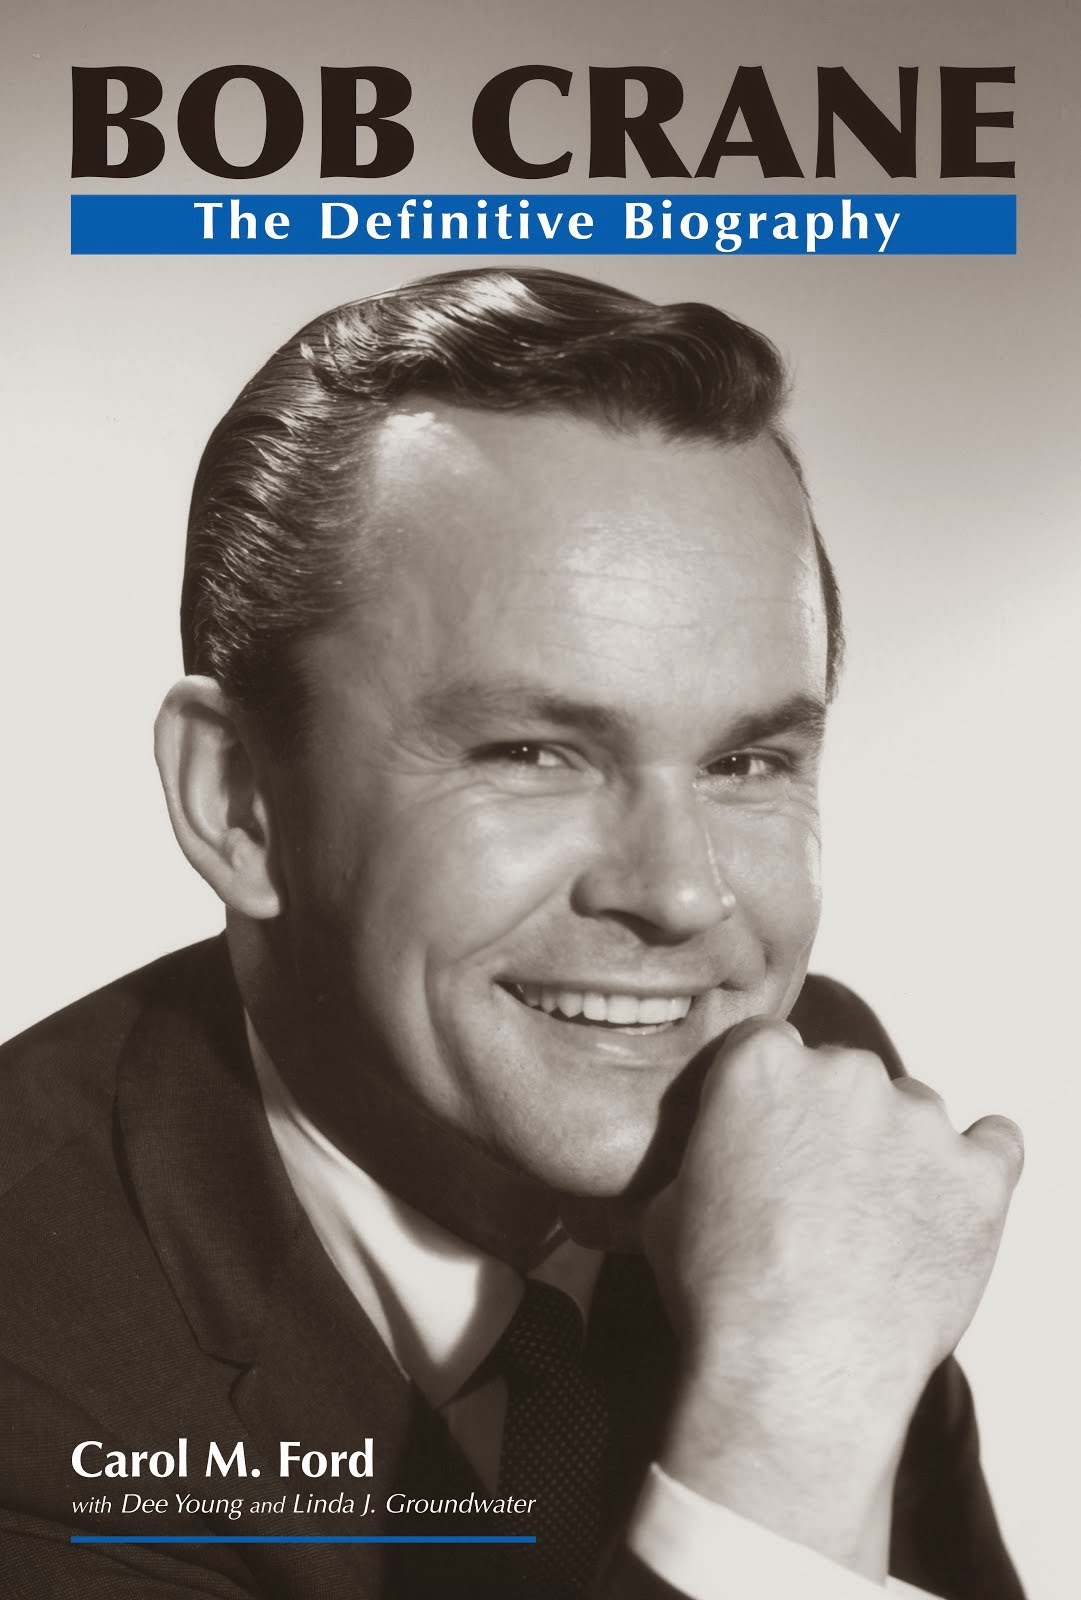 Bob Crane's Official Biography